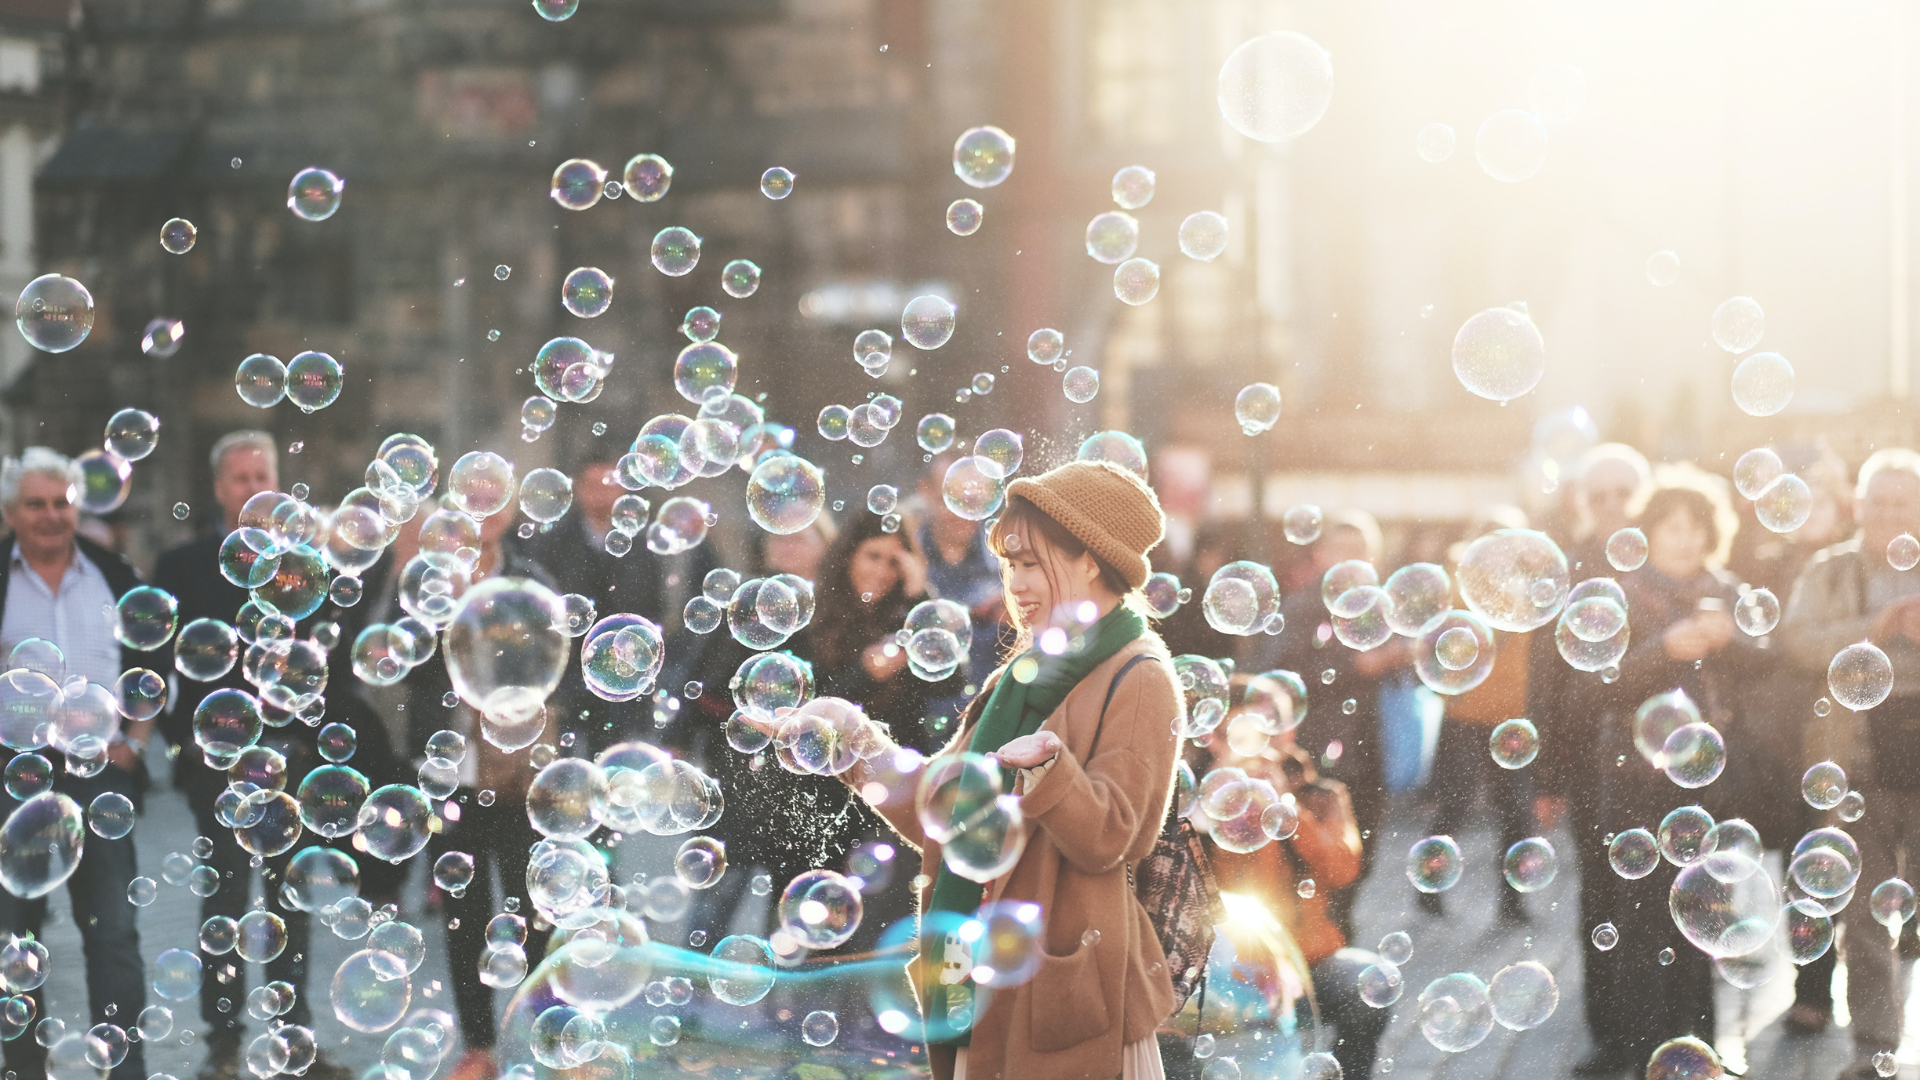 A young Asian woman smiles in a cloud of bubbles